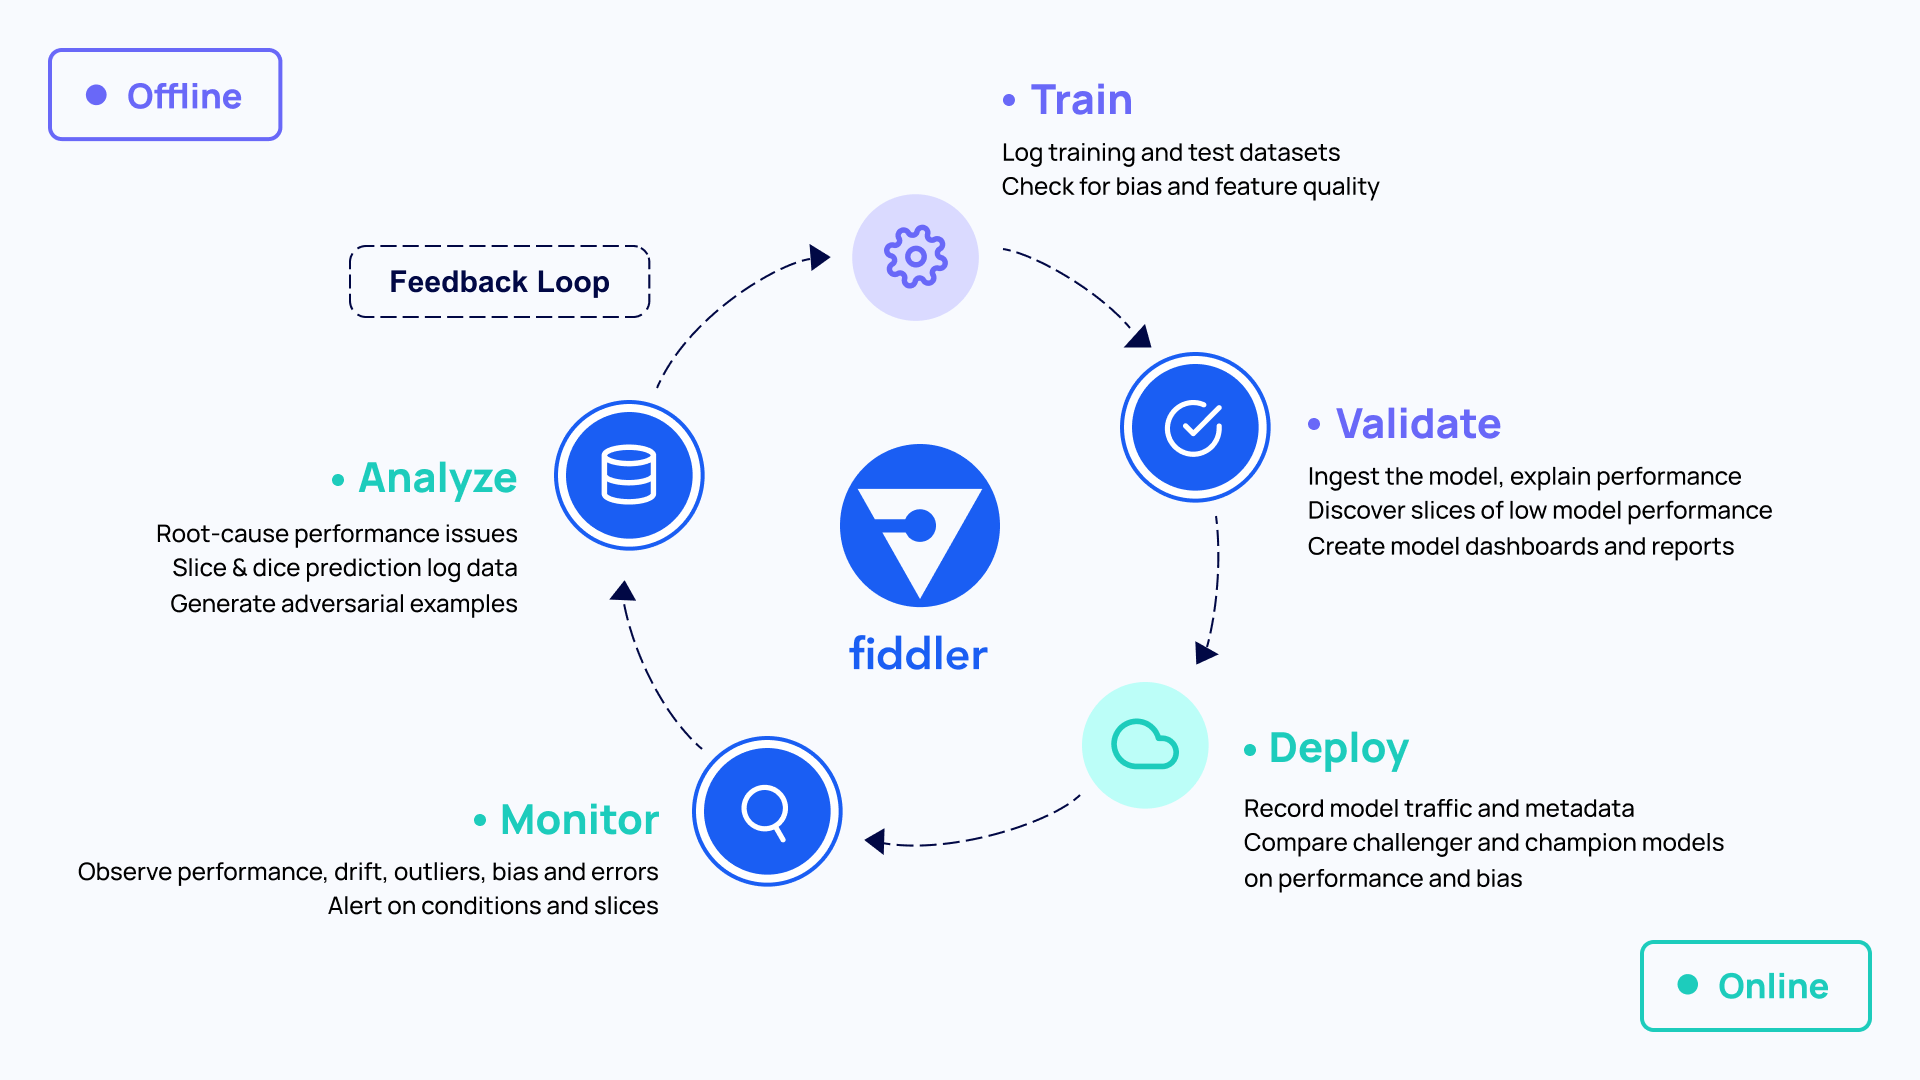 In short, the ML feedback loop involves Training and Validating models offline and Deploying, Monitoring, and Analyzing model online.